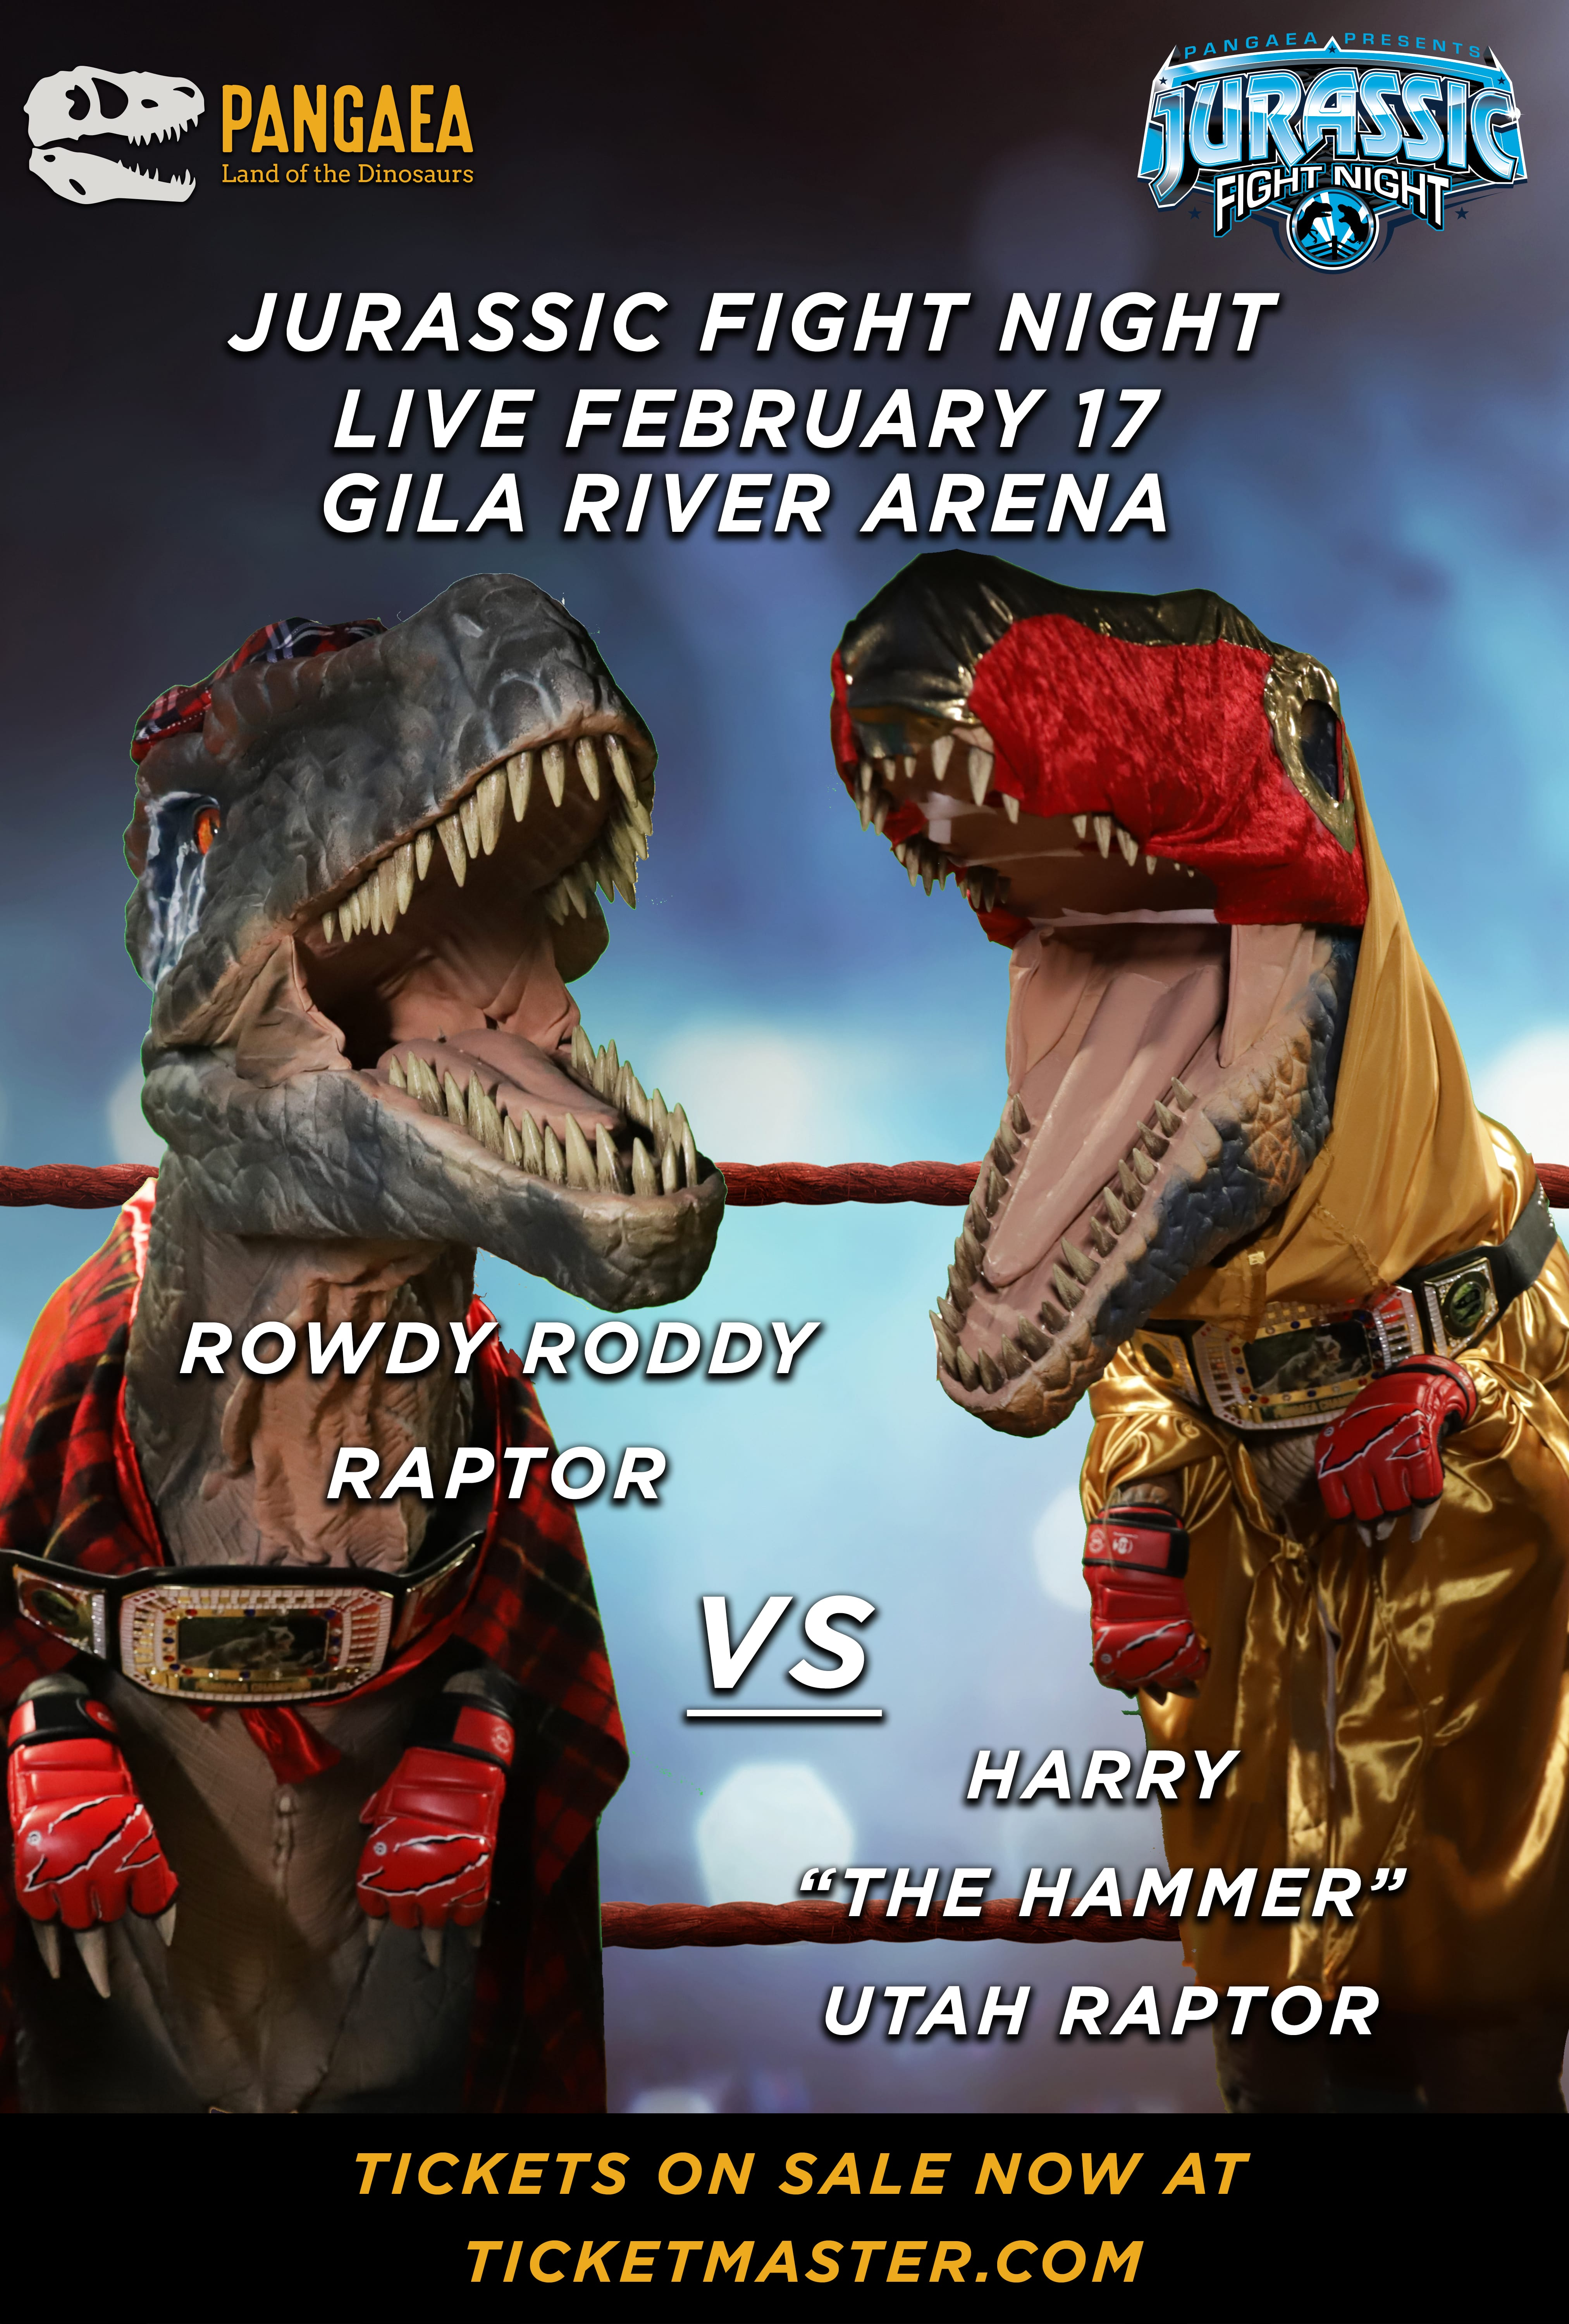 jurassic_fight_night_poster_V3-2